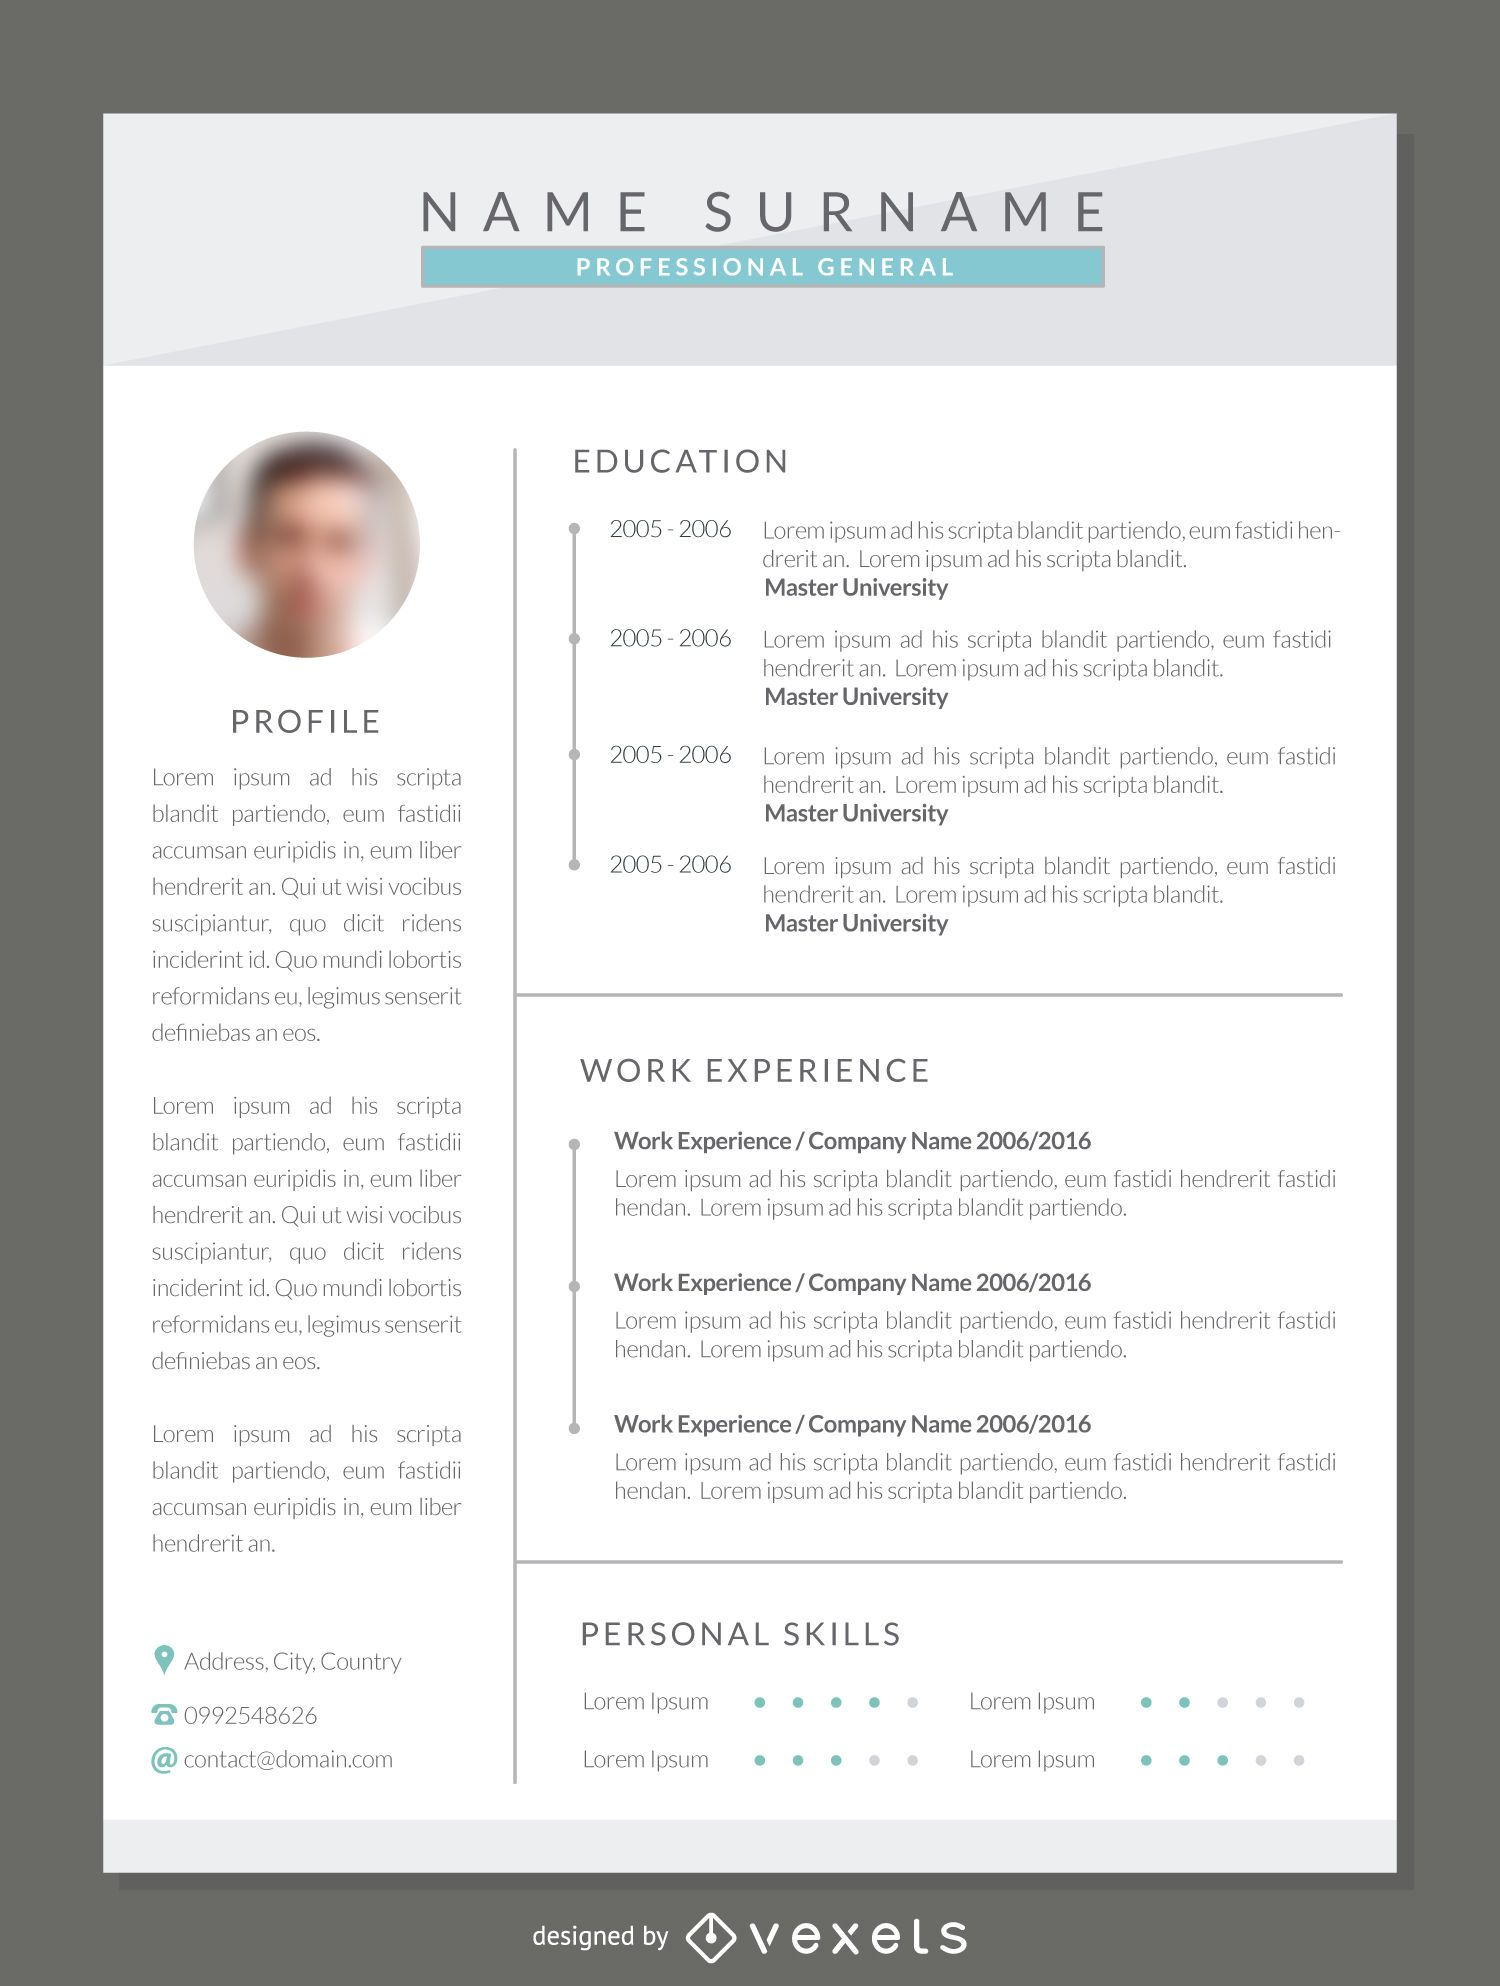 20 Best And Worst Fonts To Use On Your Resume Design School Modern Resume Mockup Template Vector Download